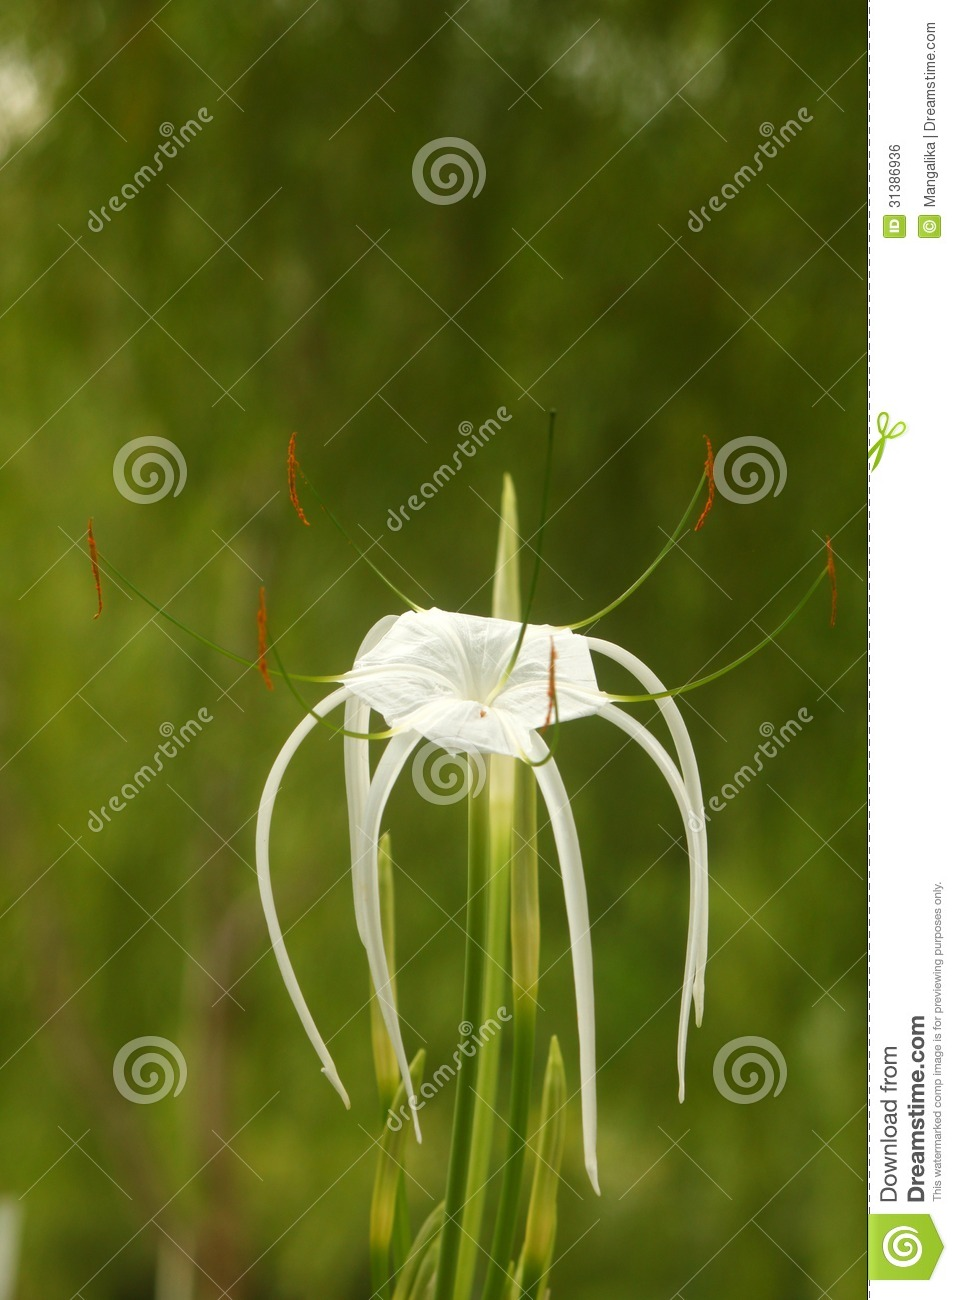 Beautiful Pale Green Bedrooms: Beautiful White Flower With Long Stigma Royalty Free Stock